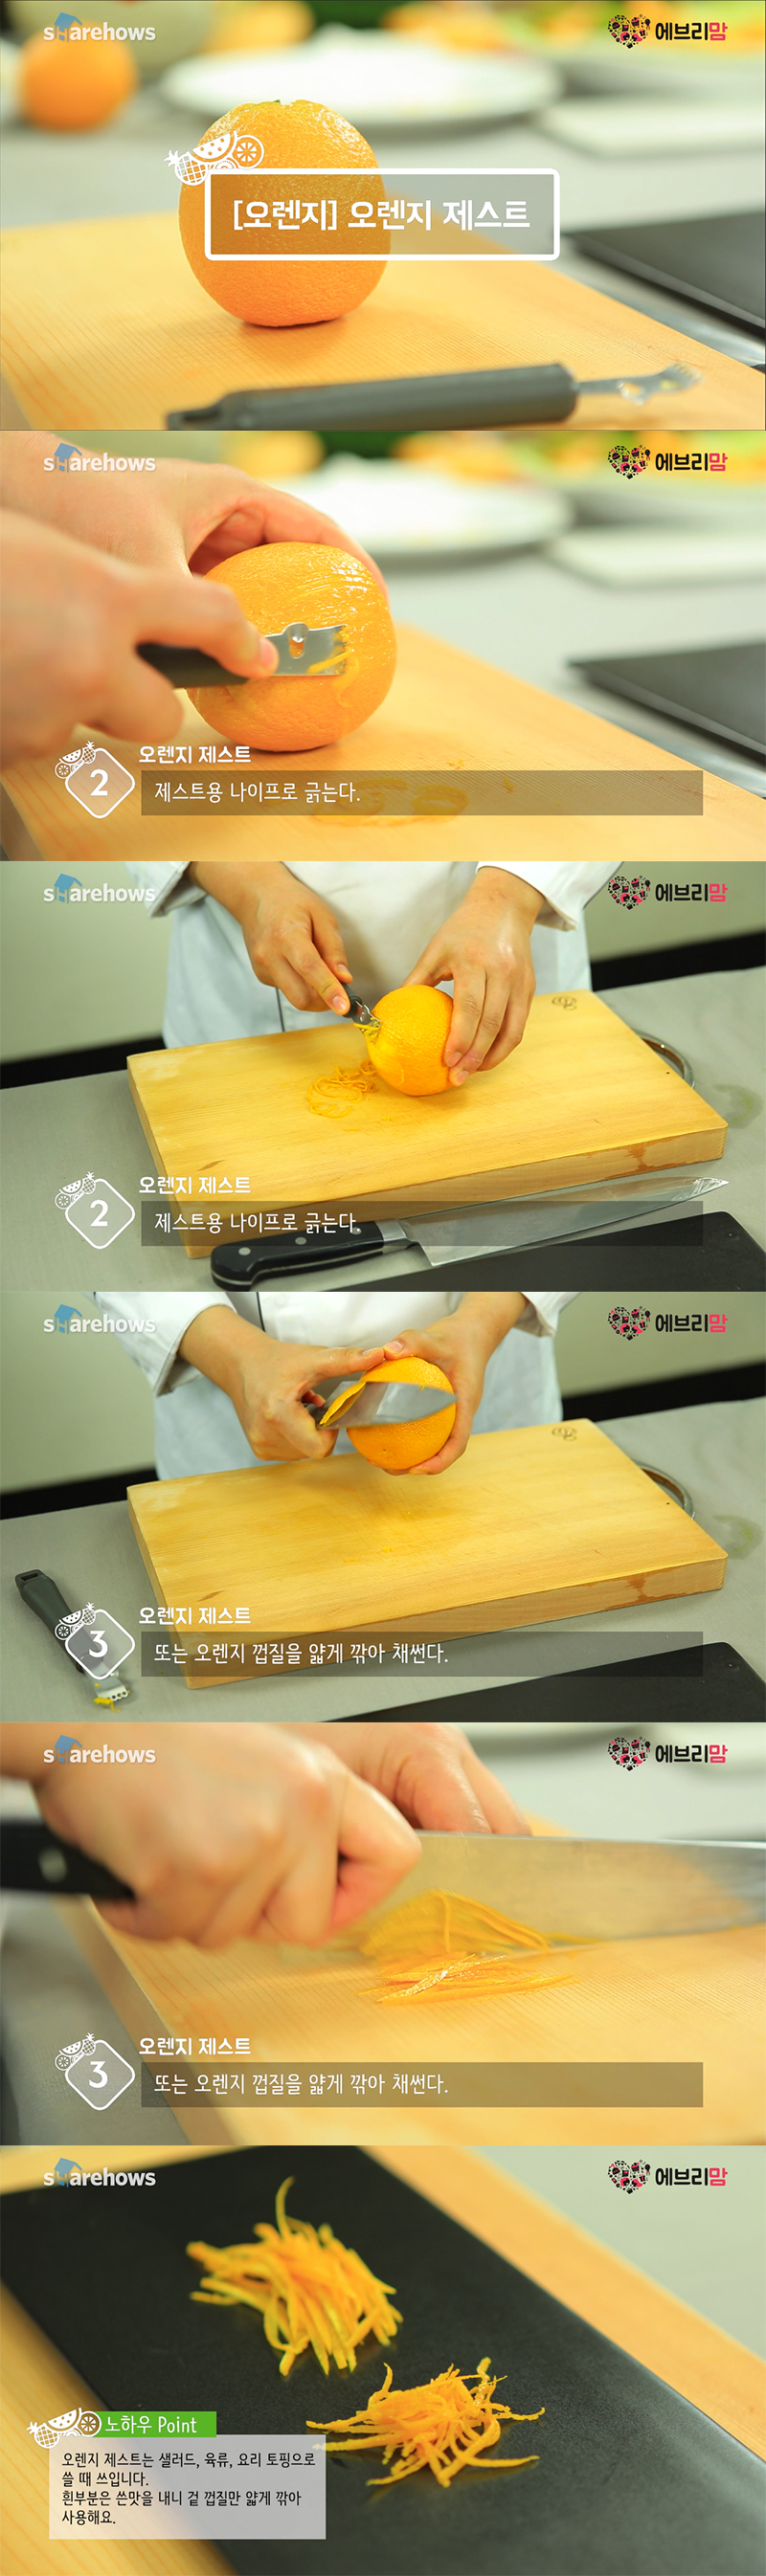 how-to-cut-orange 03